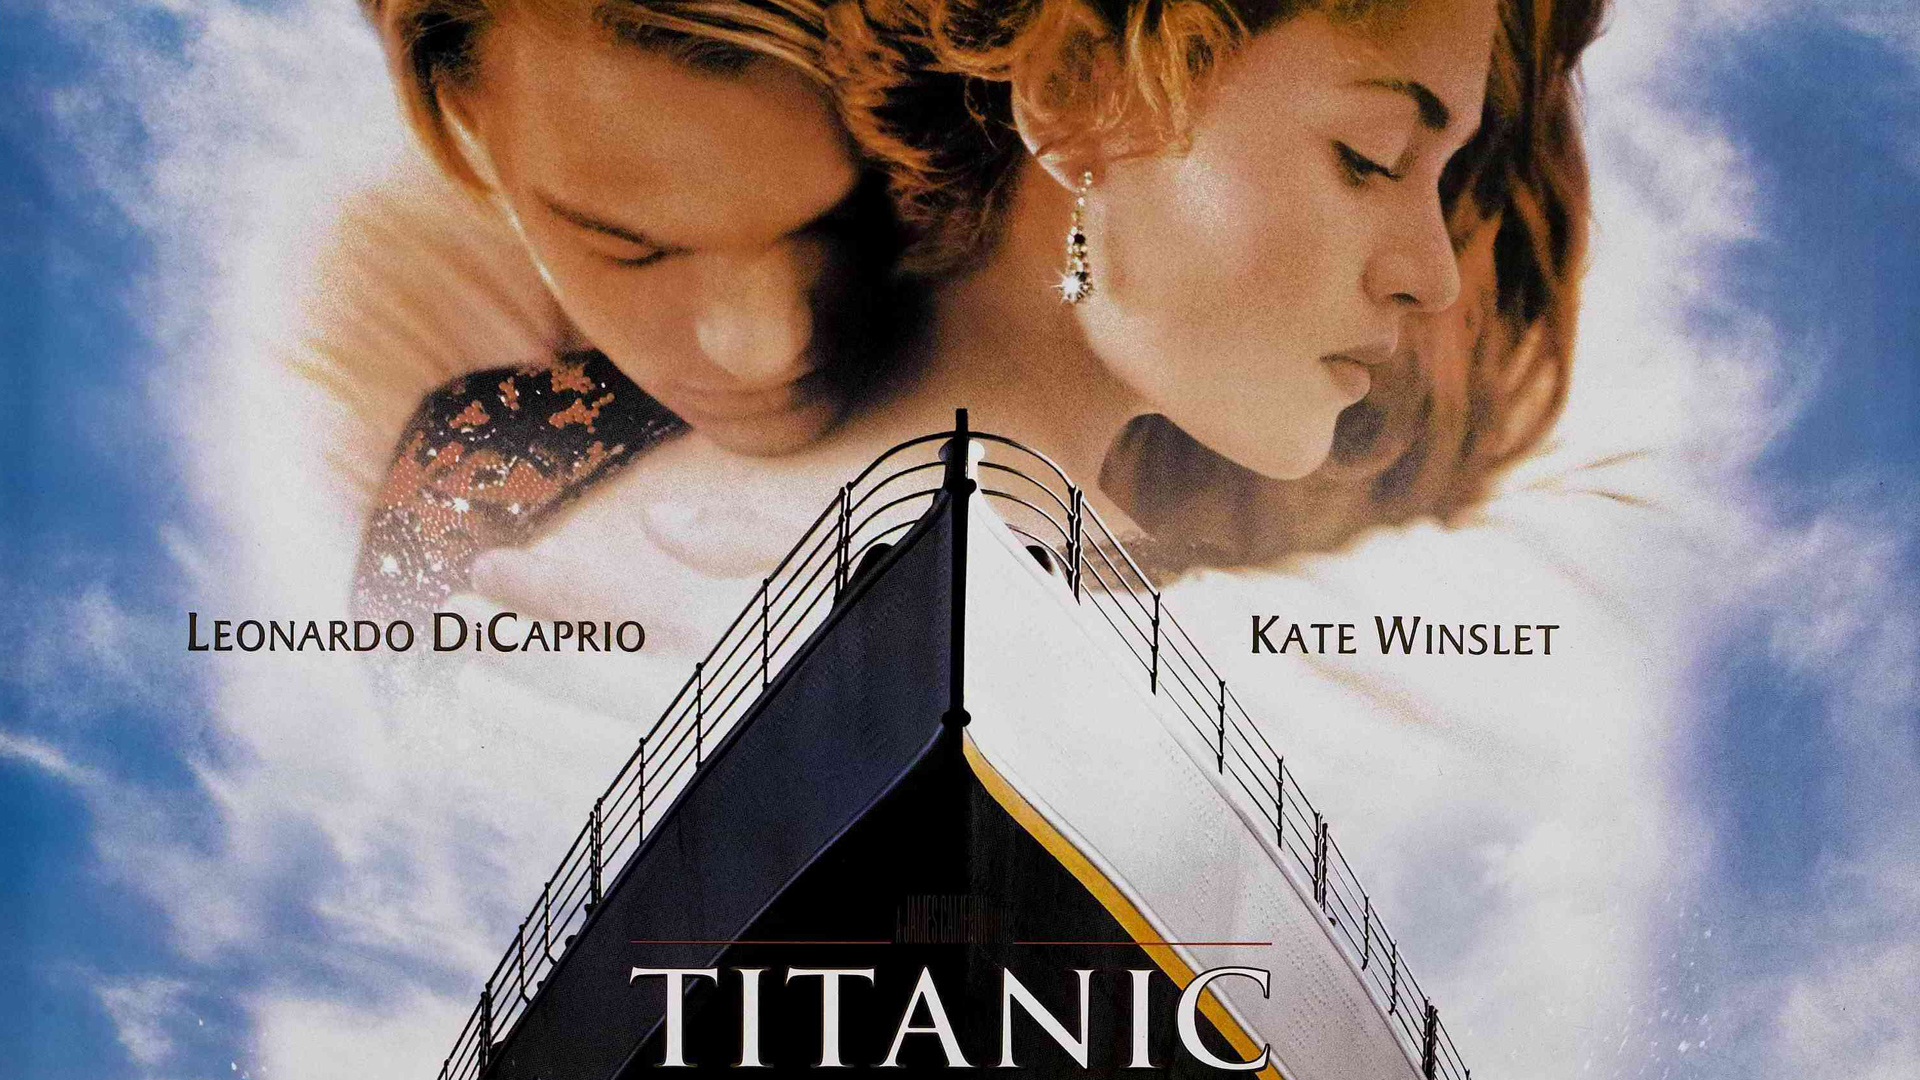 Titanic Movie Wallpapers HD Wallpapers 1920x1080